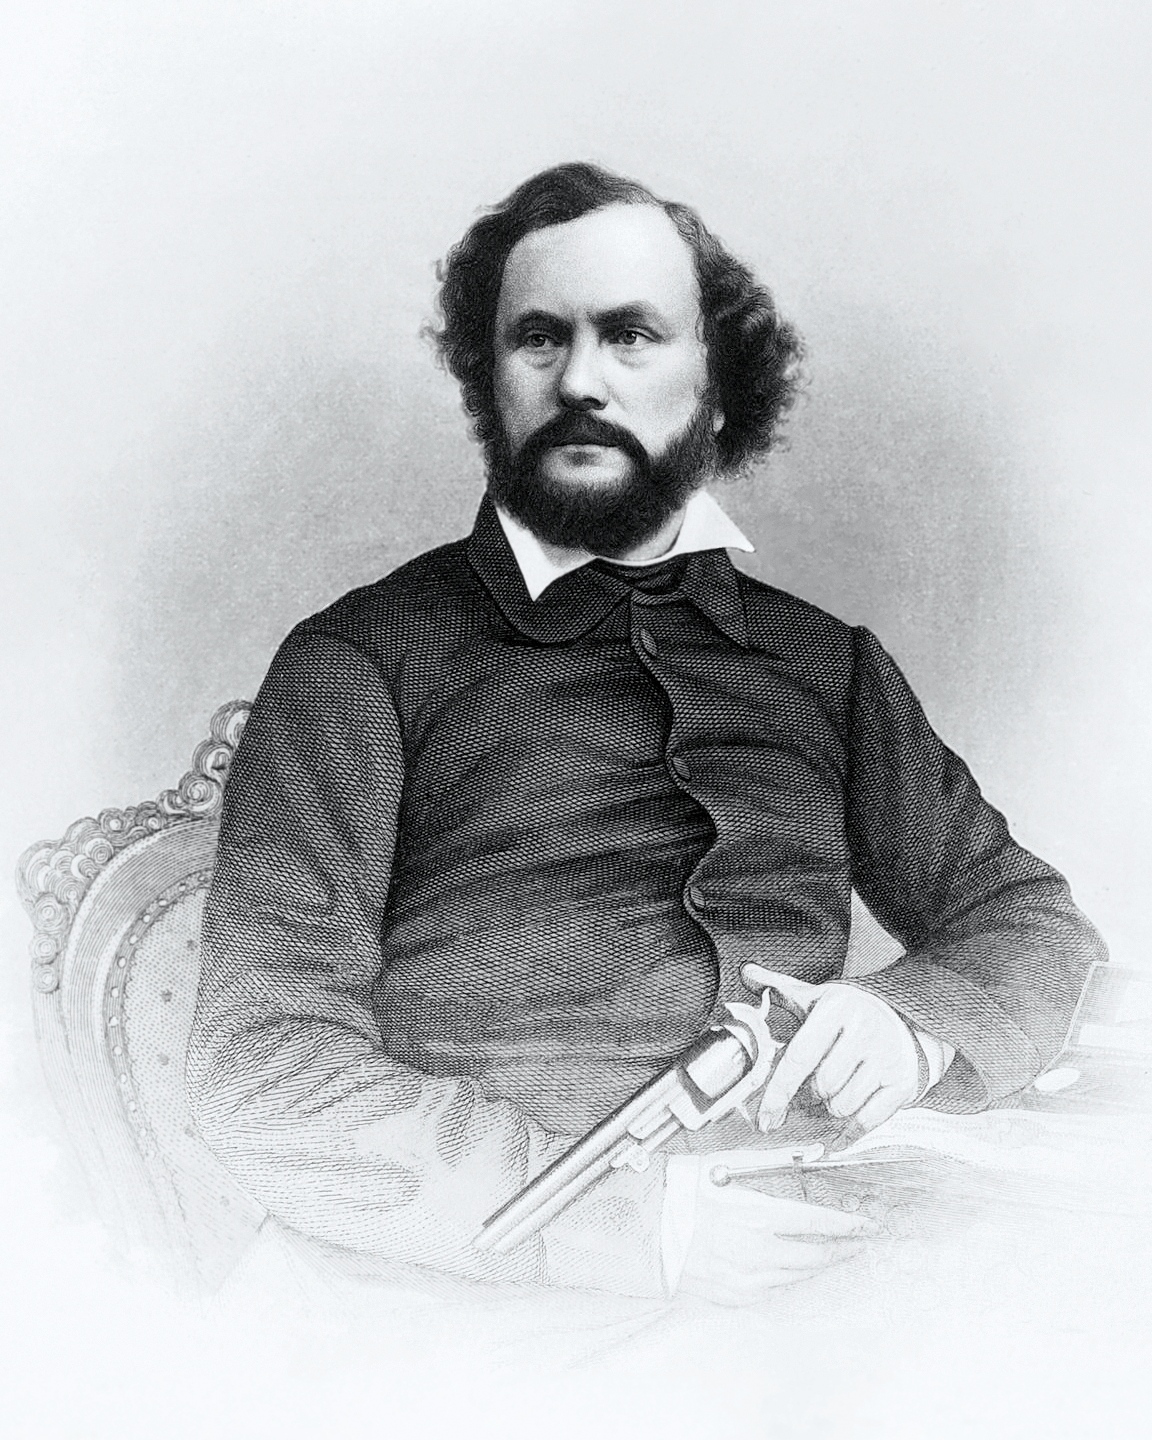 Samuel_Colt_engraving_by_John_Chester_Buttre,_c1855